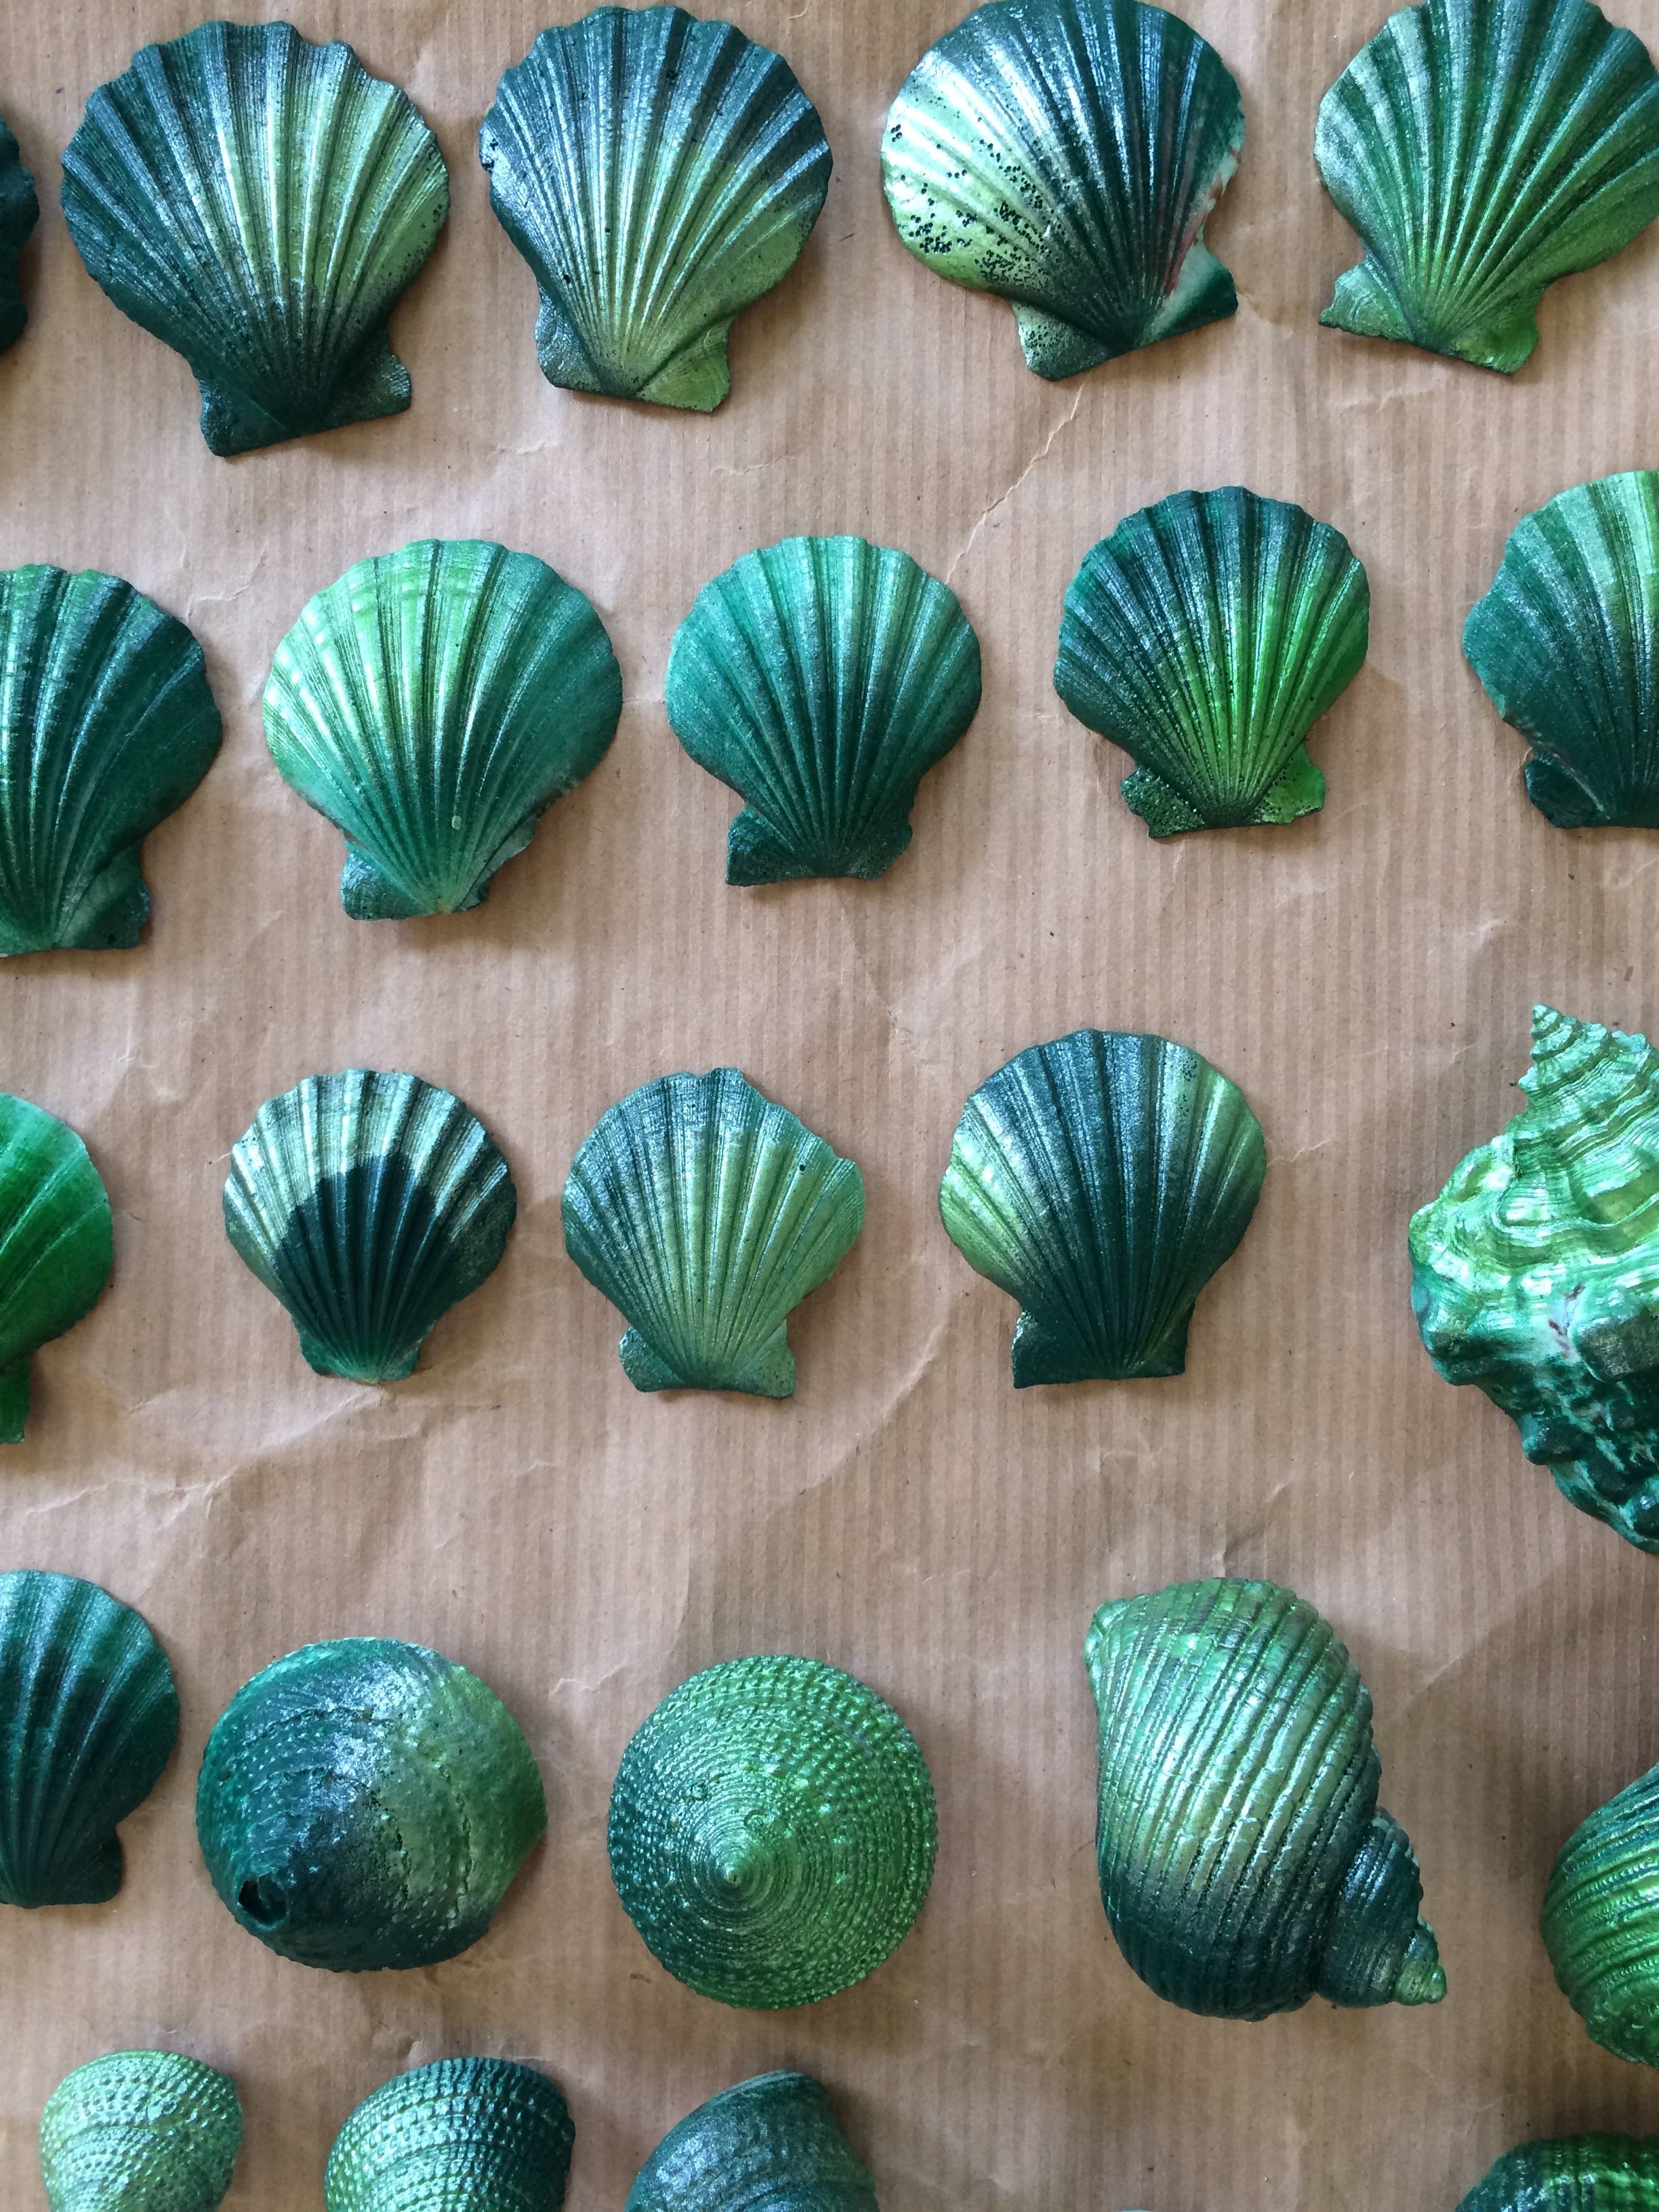 Spray painted shells in two shades of green